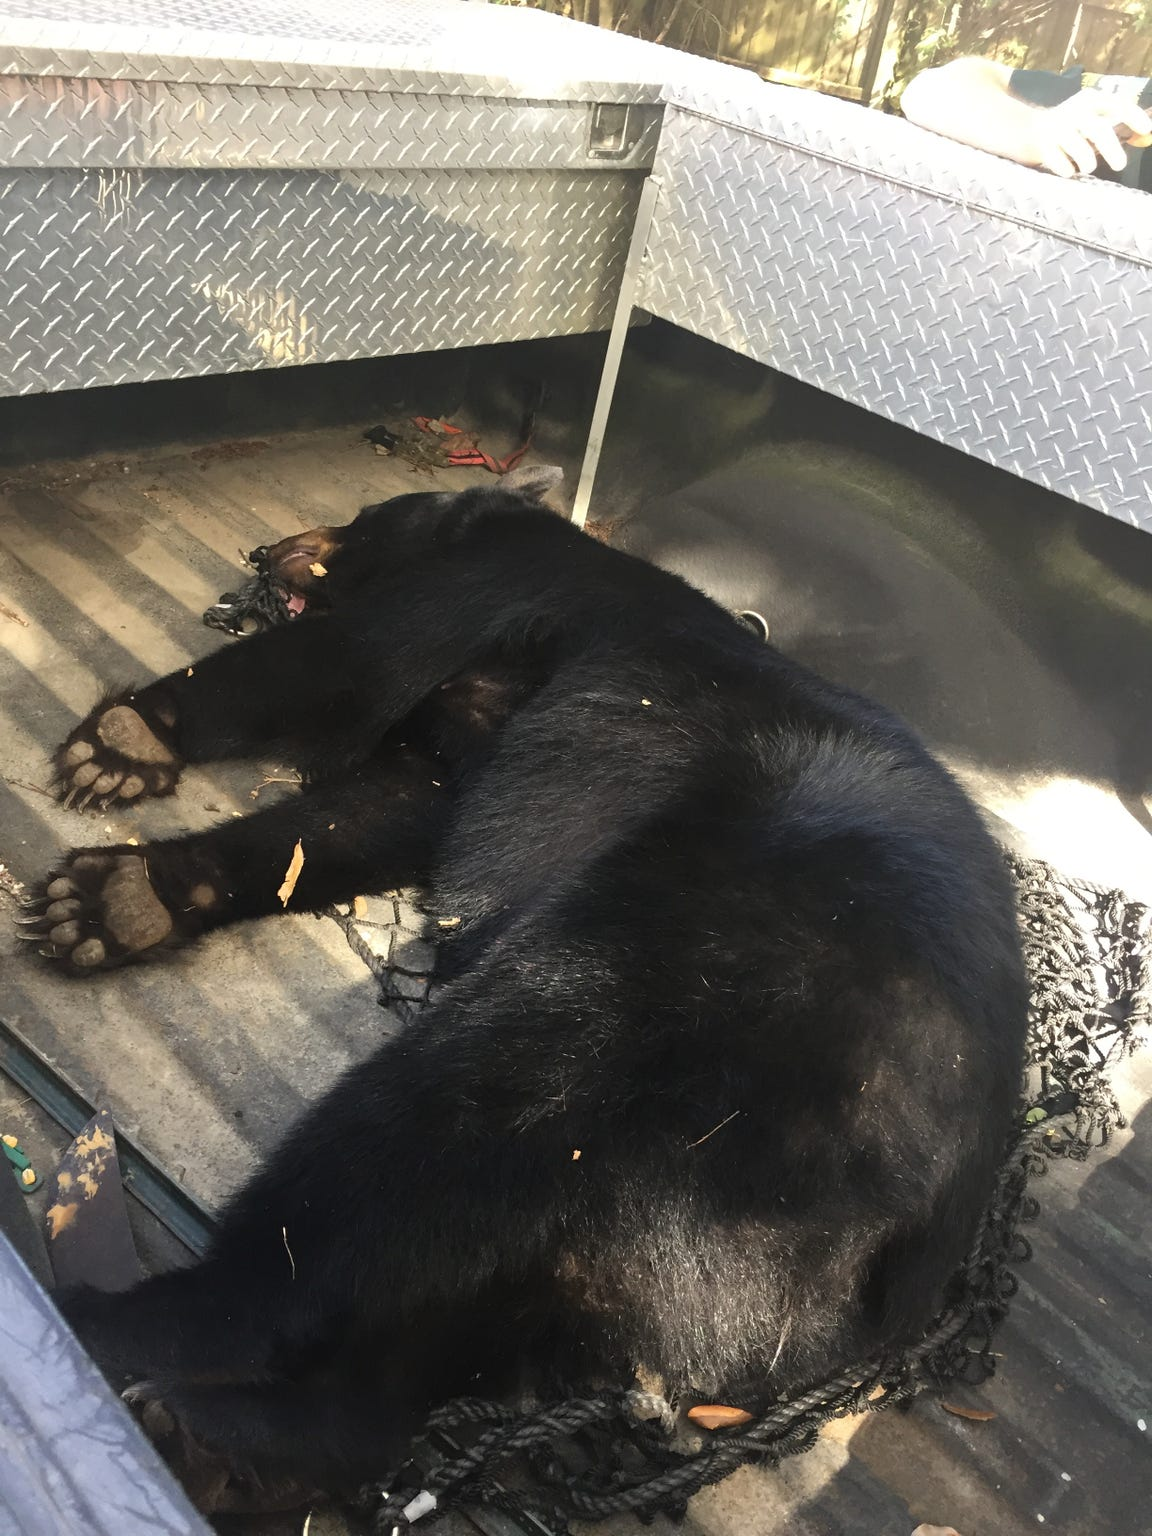 This black bear was safely tranquilized and released